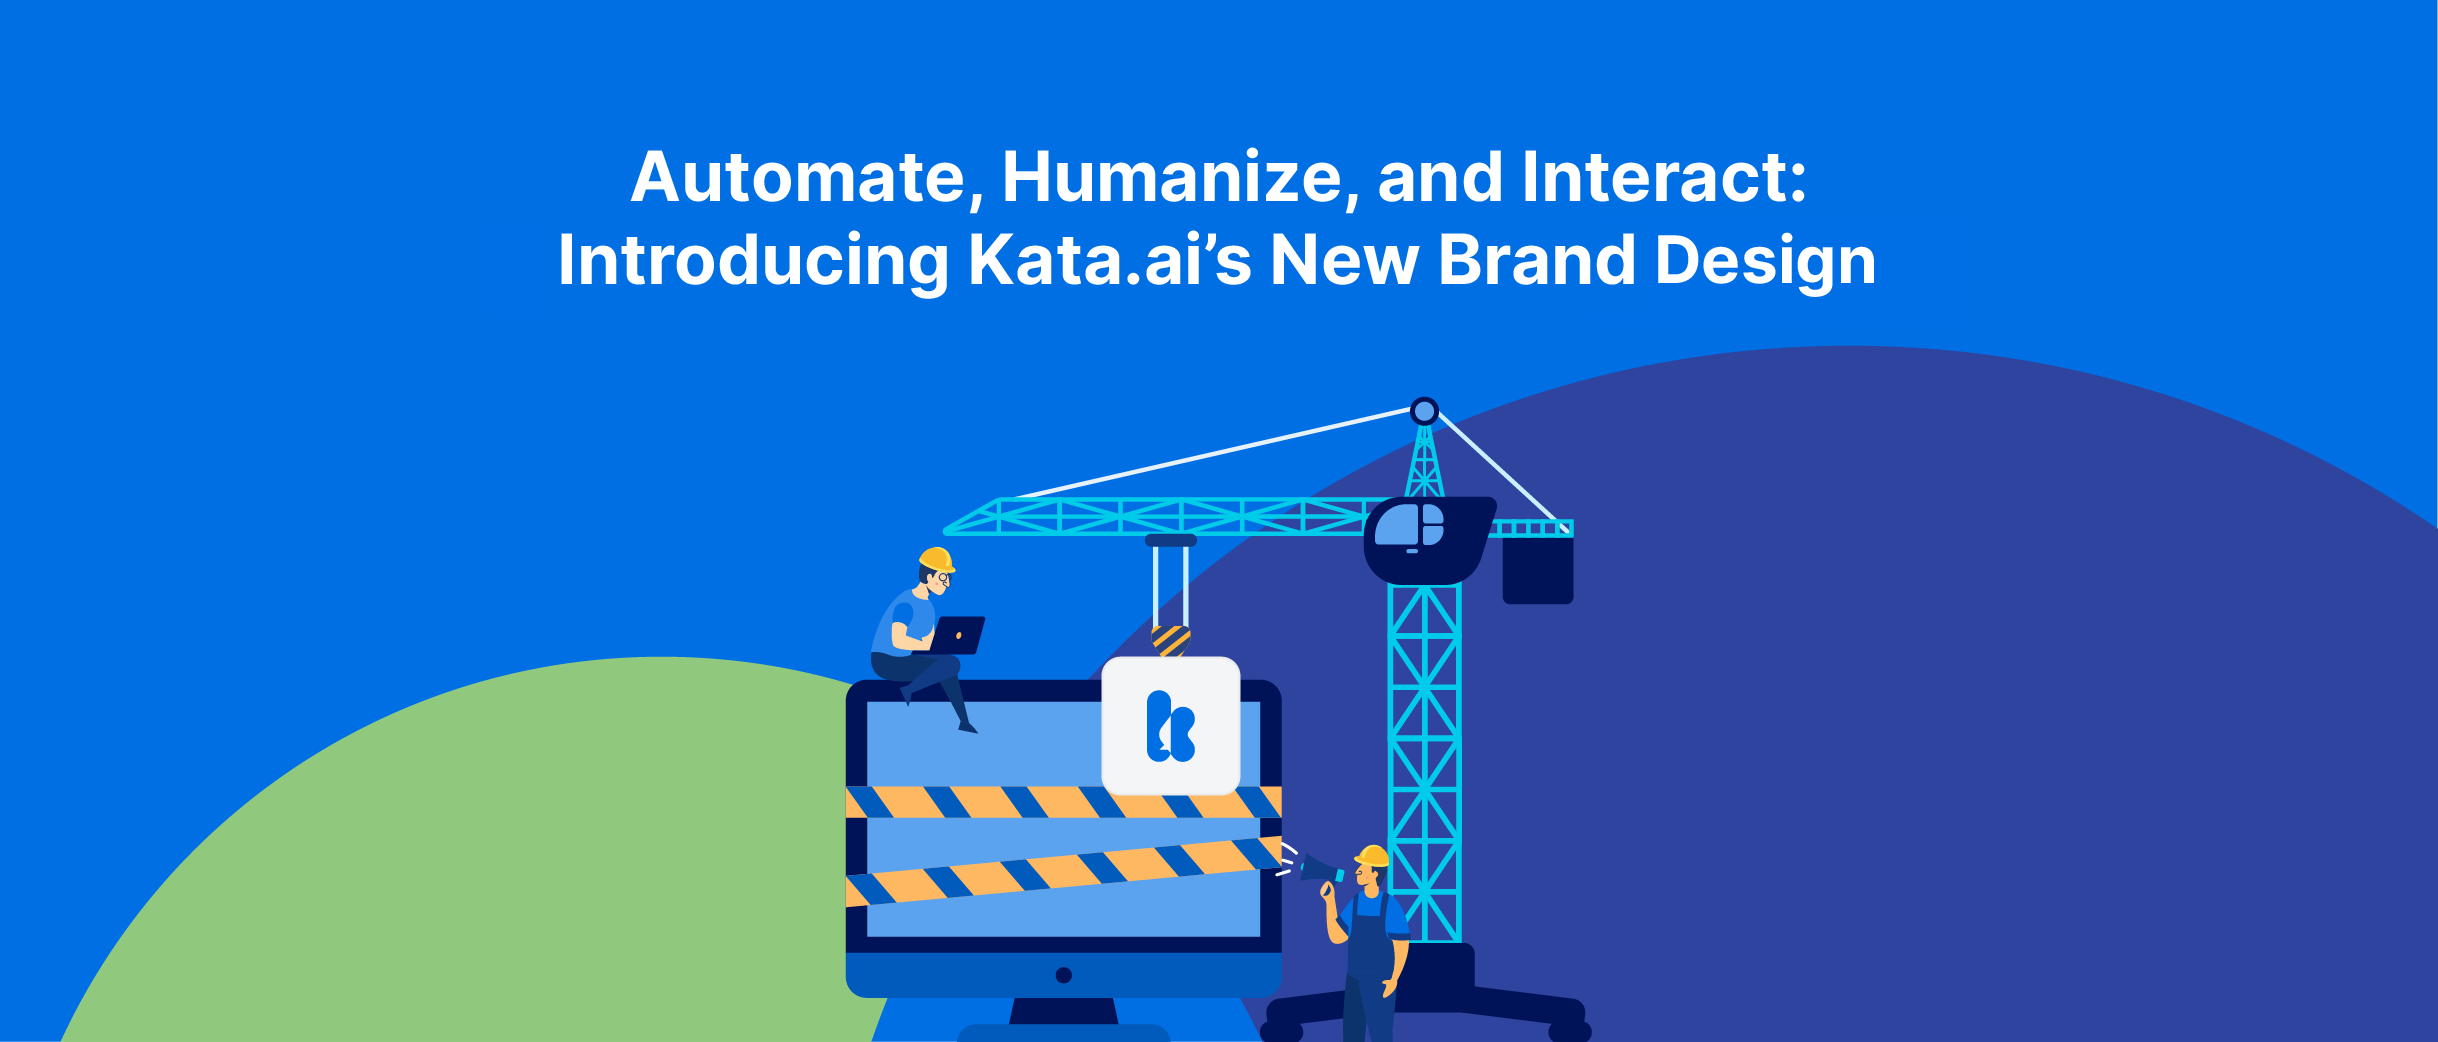 Kata.ai is introducing a new brand design that reflects our three core principles: Automate, Humanize, and Interact.